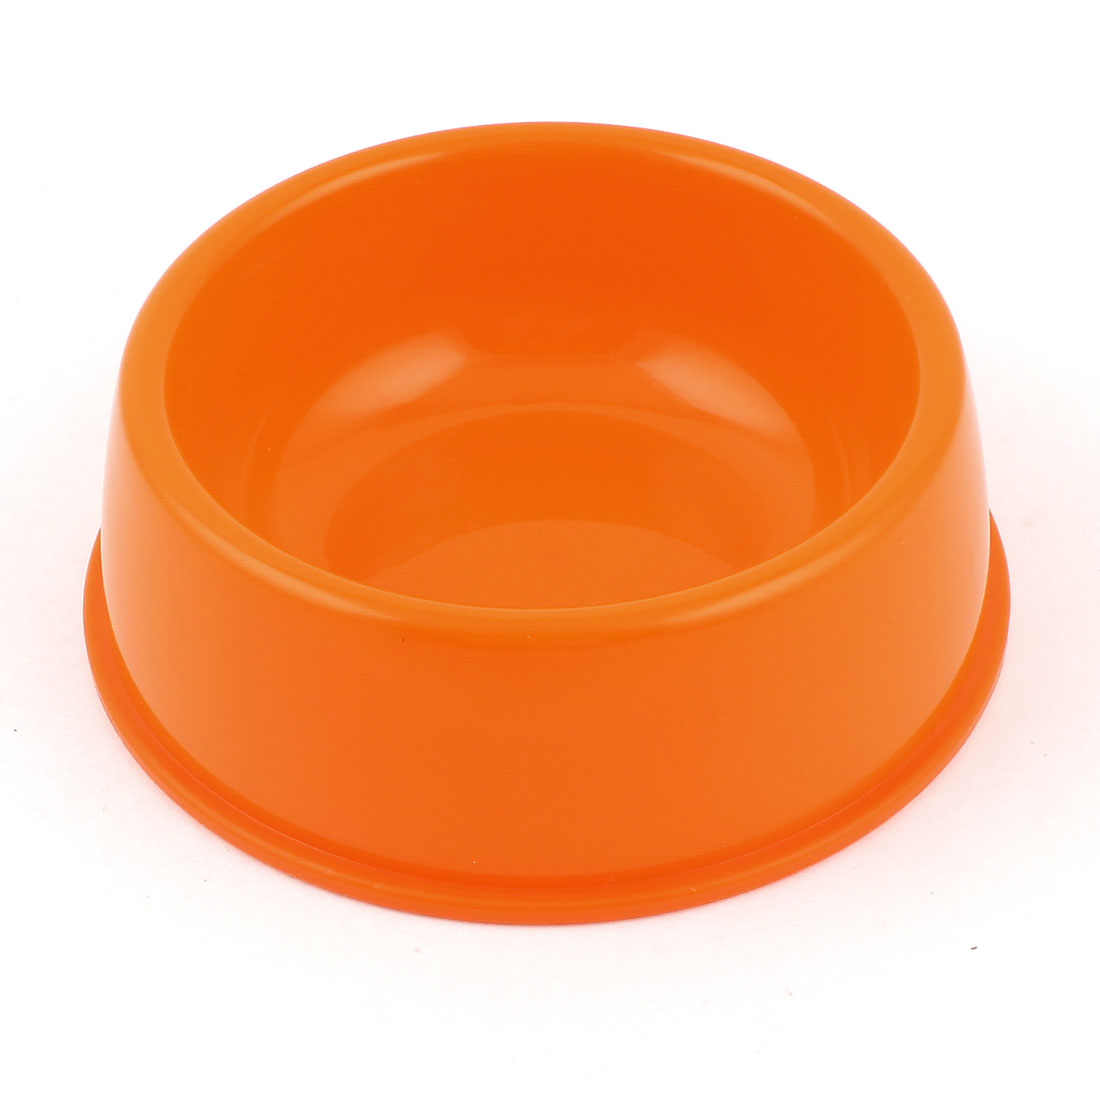 Plastic Food Water Drinking Feeder Bowl Dish Orange for Pet Cat Doggie